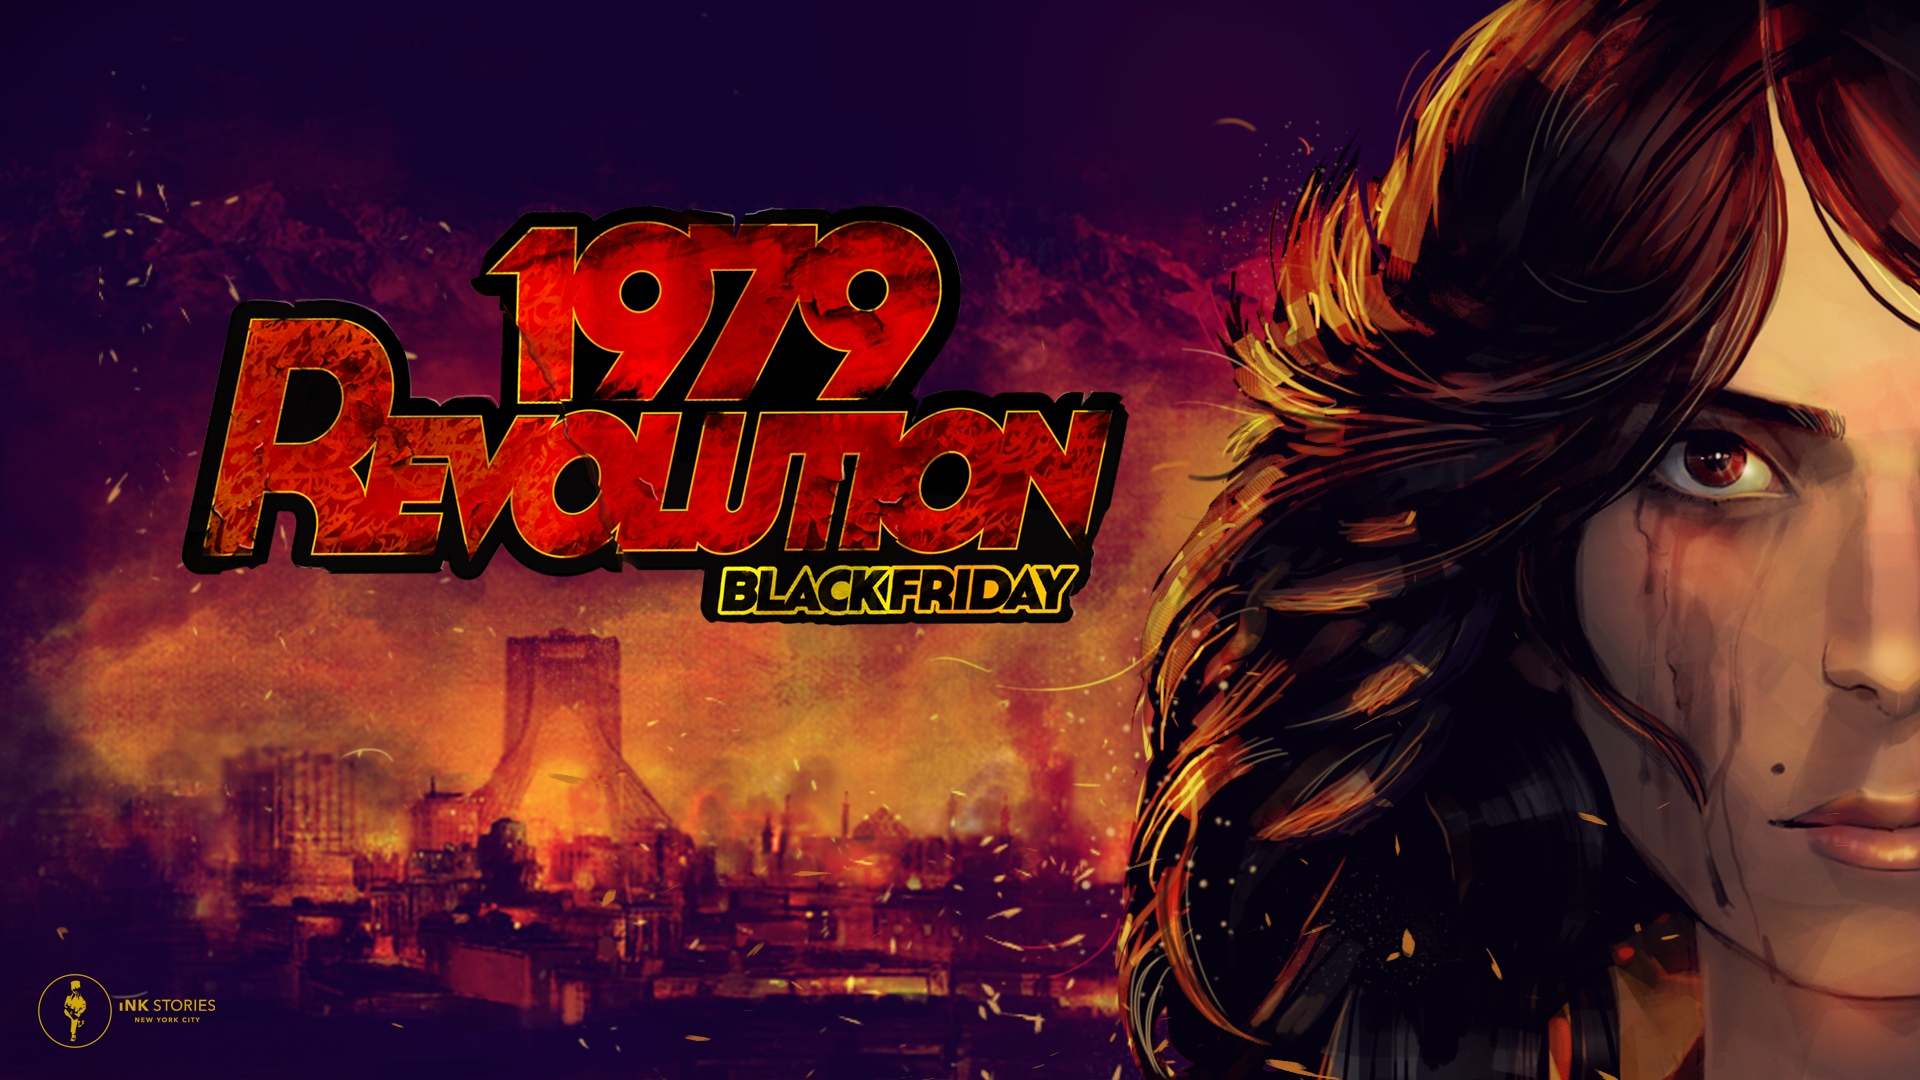 '1979 Revolution' proceeds to be donated to ACLU.